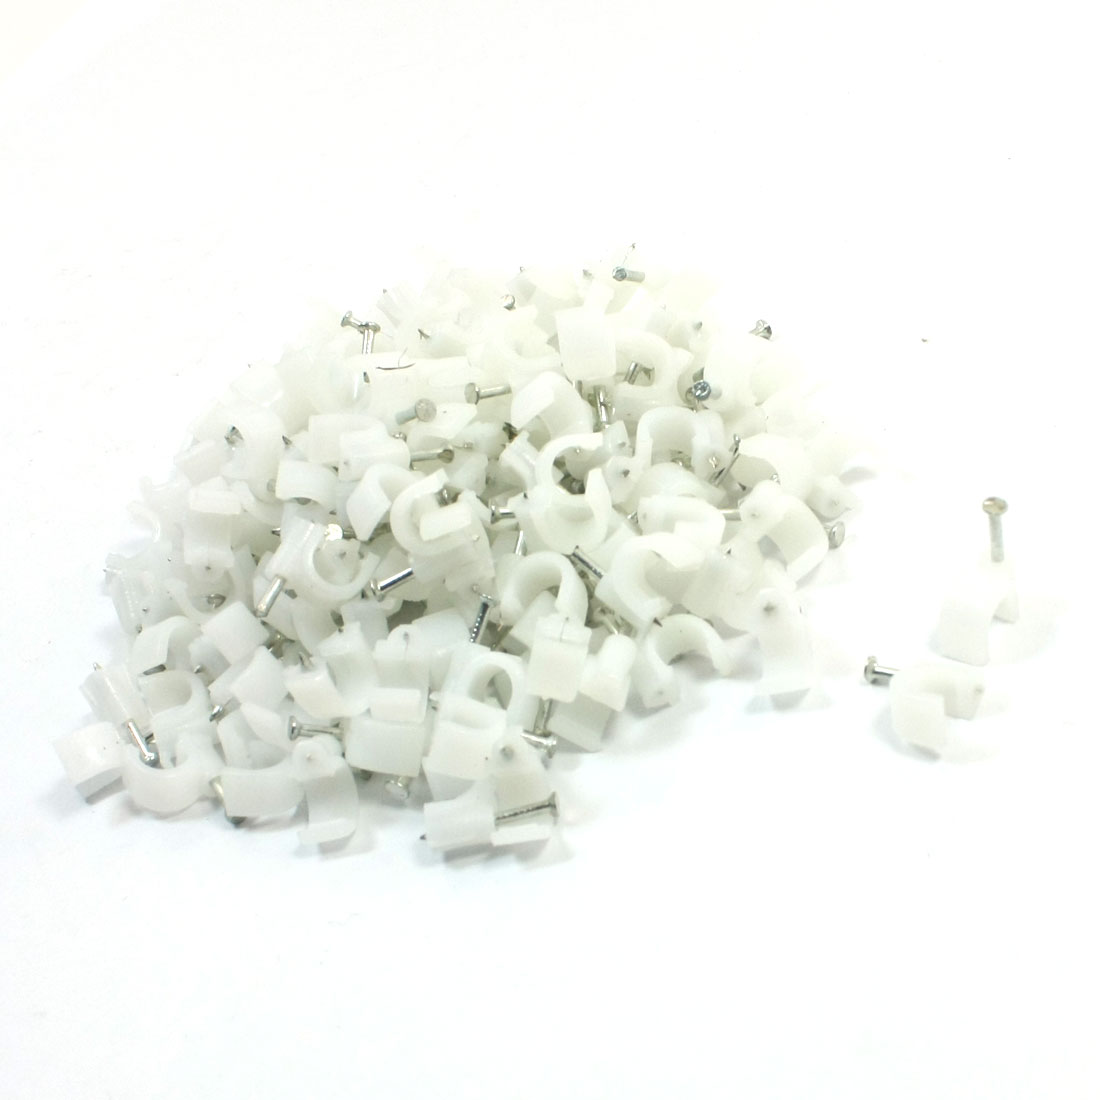 350Pcs 7mm Dia White Plastic Electric Cable Wire Circle Nail Clips